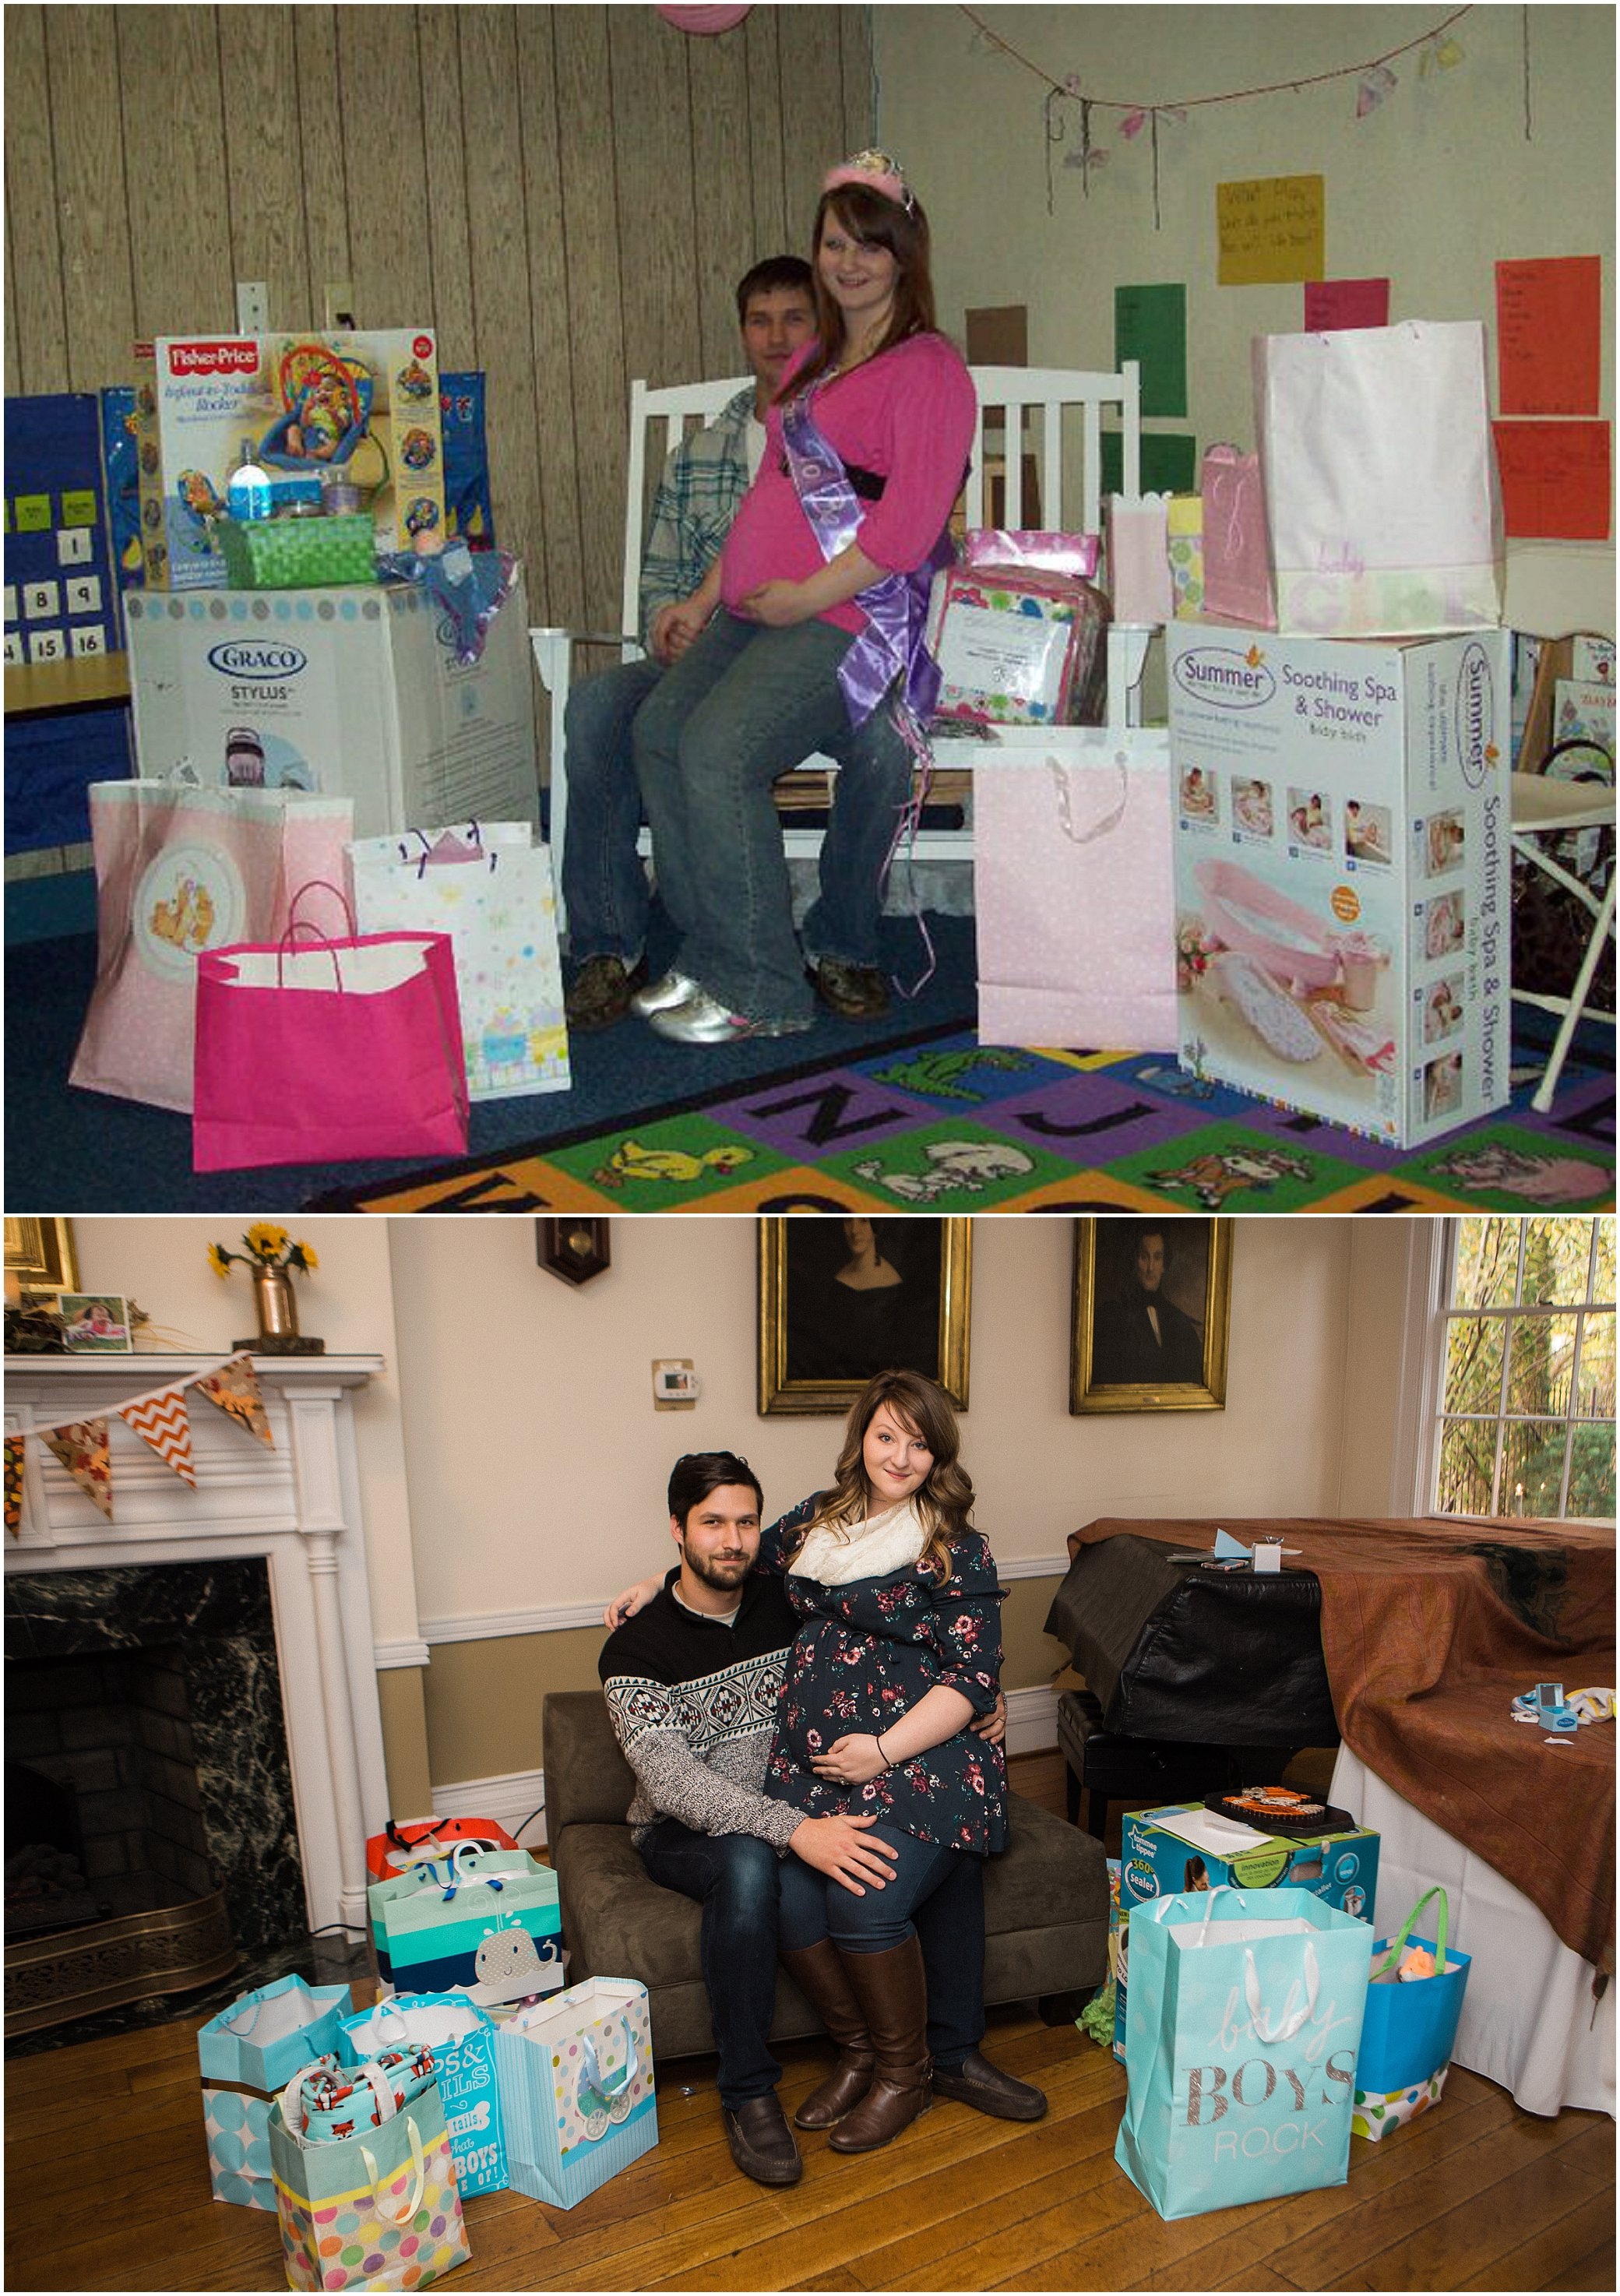 TOP IMAGE (2010) PHOTO CREDIT: My Aunt - Our baby shower 2010 BOTTOM IMAGE (2015) PHOTO CREDIT: My Uncle - Our baby shower 2015